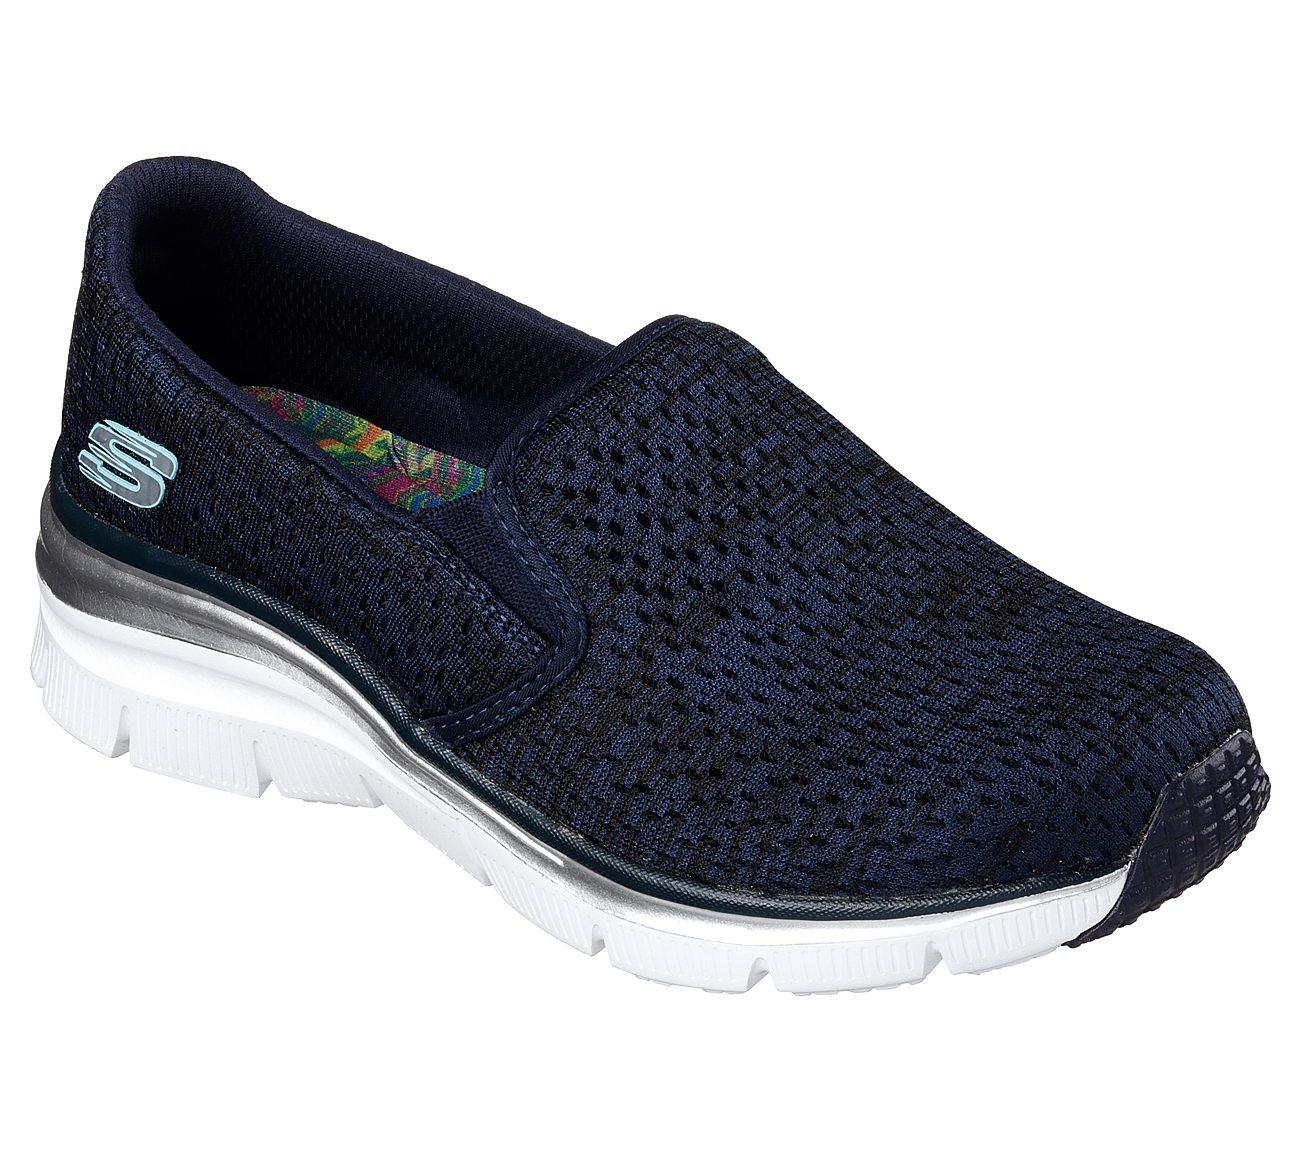 skechers shoes that make you taller